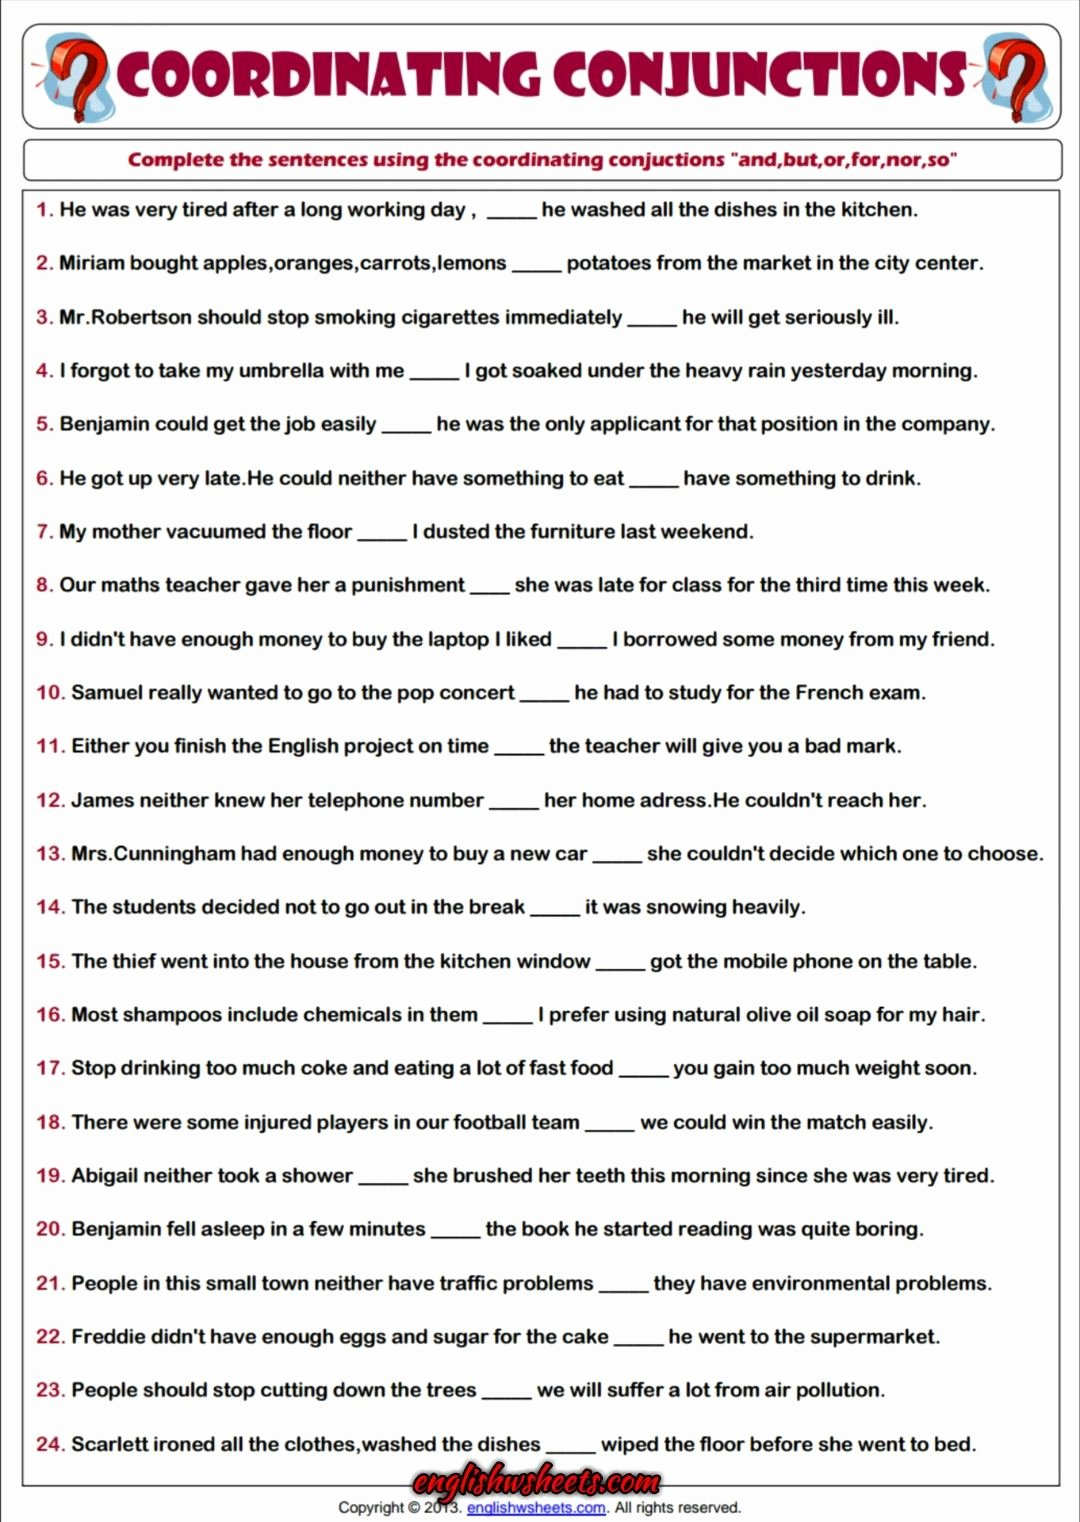 Correlative Conjunctions Worksheet 5th Grade Ideas Coordinating Conjunctions Esl Printable Grammar Worksheet